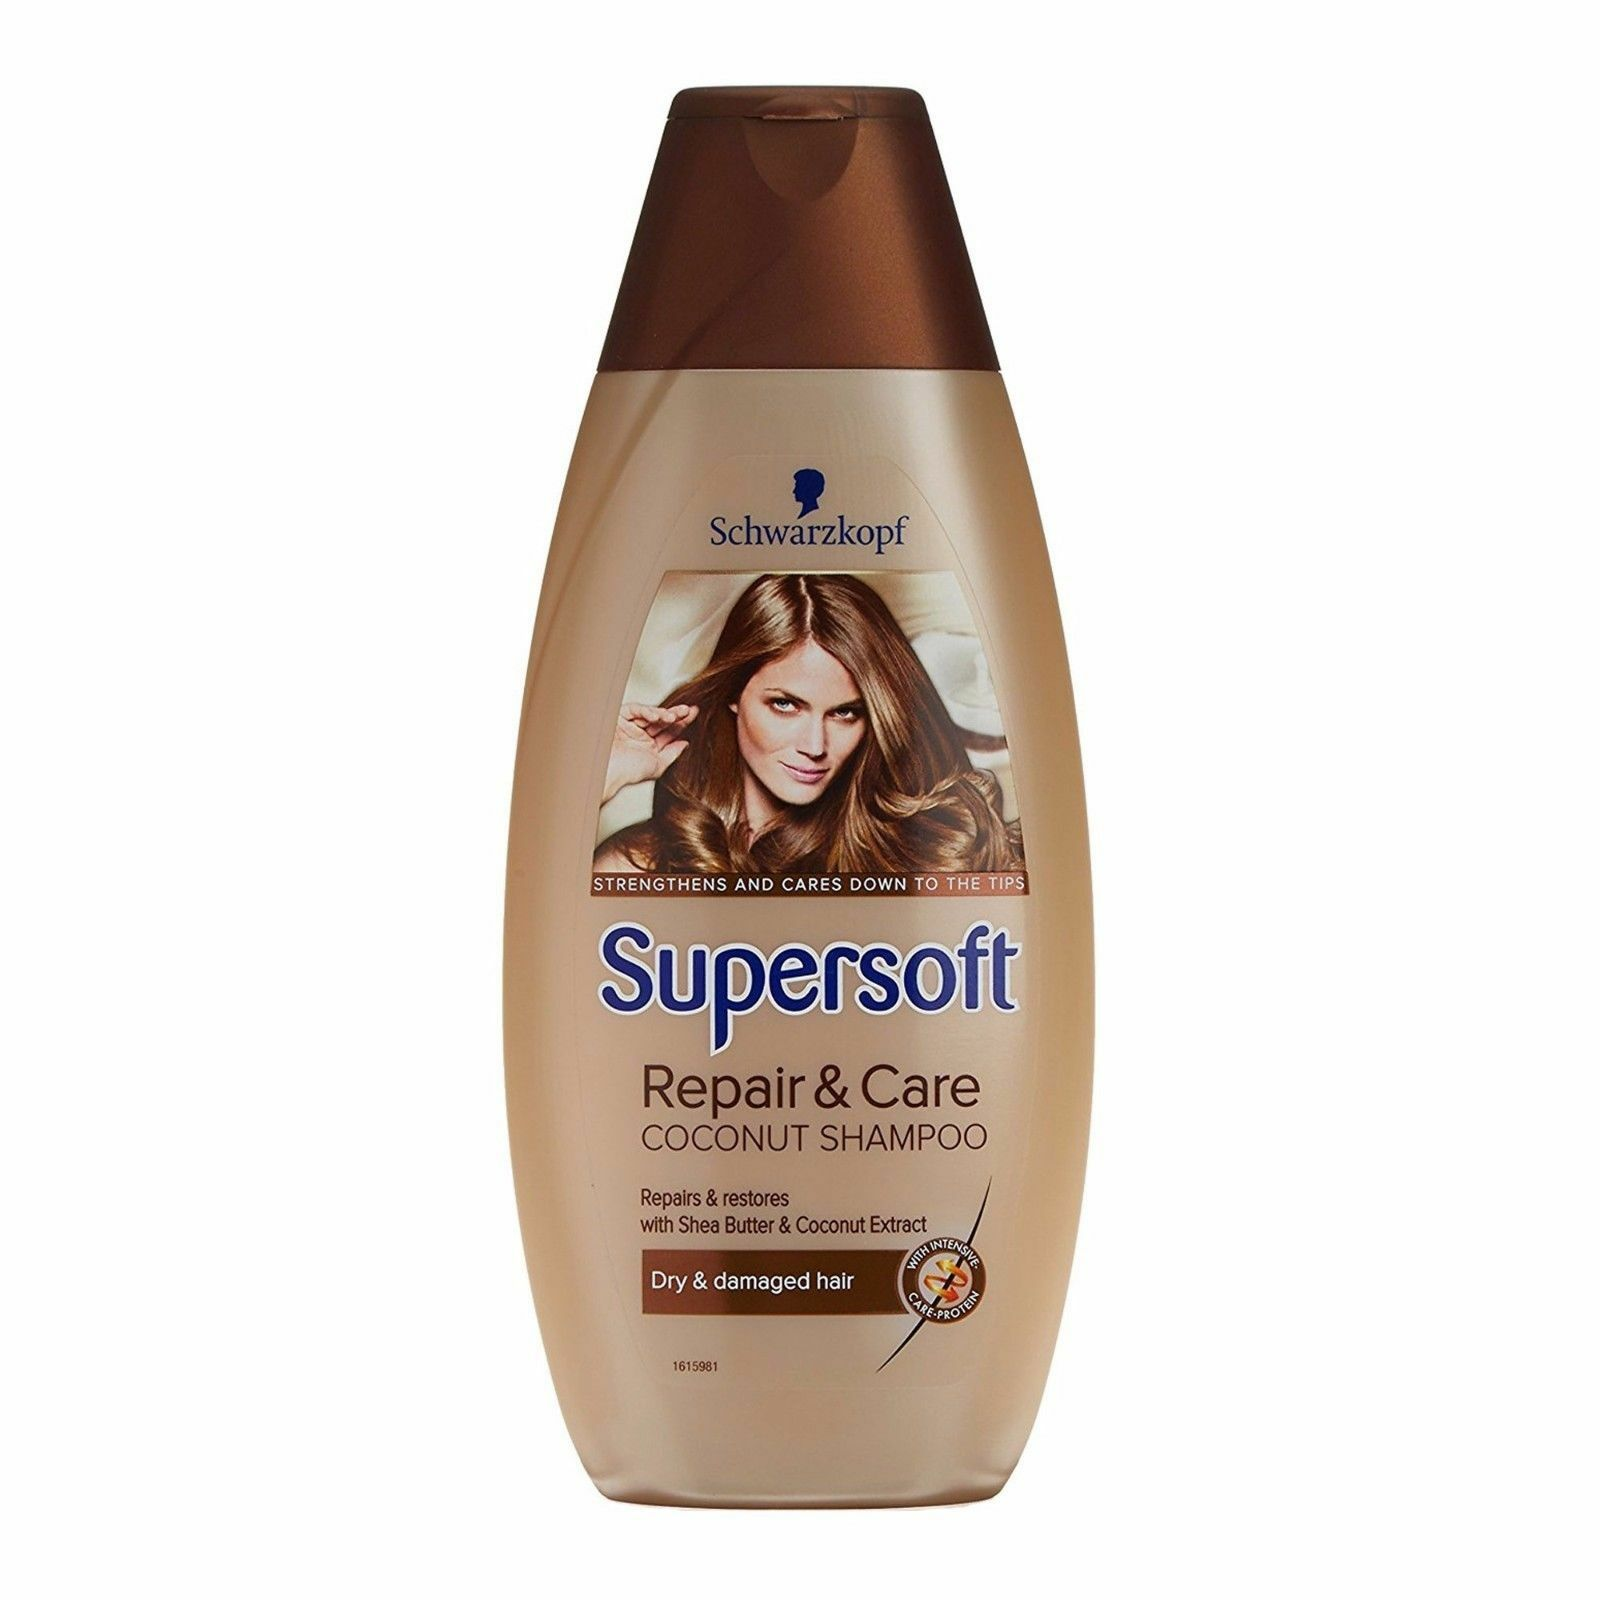 SCHWARZKOPF SUPER SOFT REPAIR & CARE SHAMPOO.